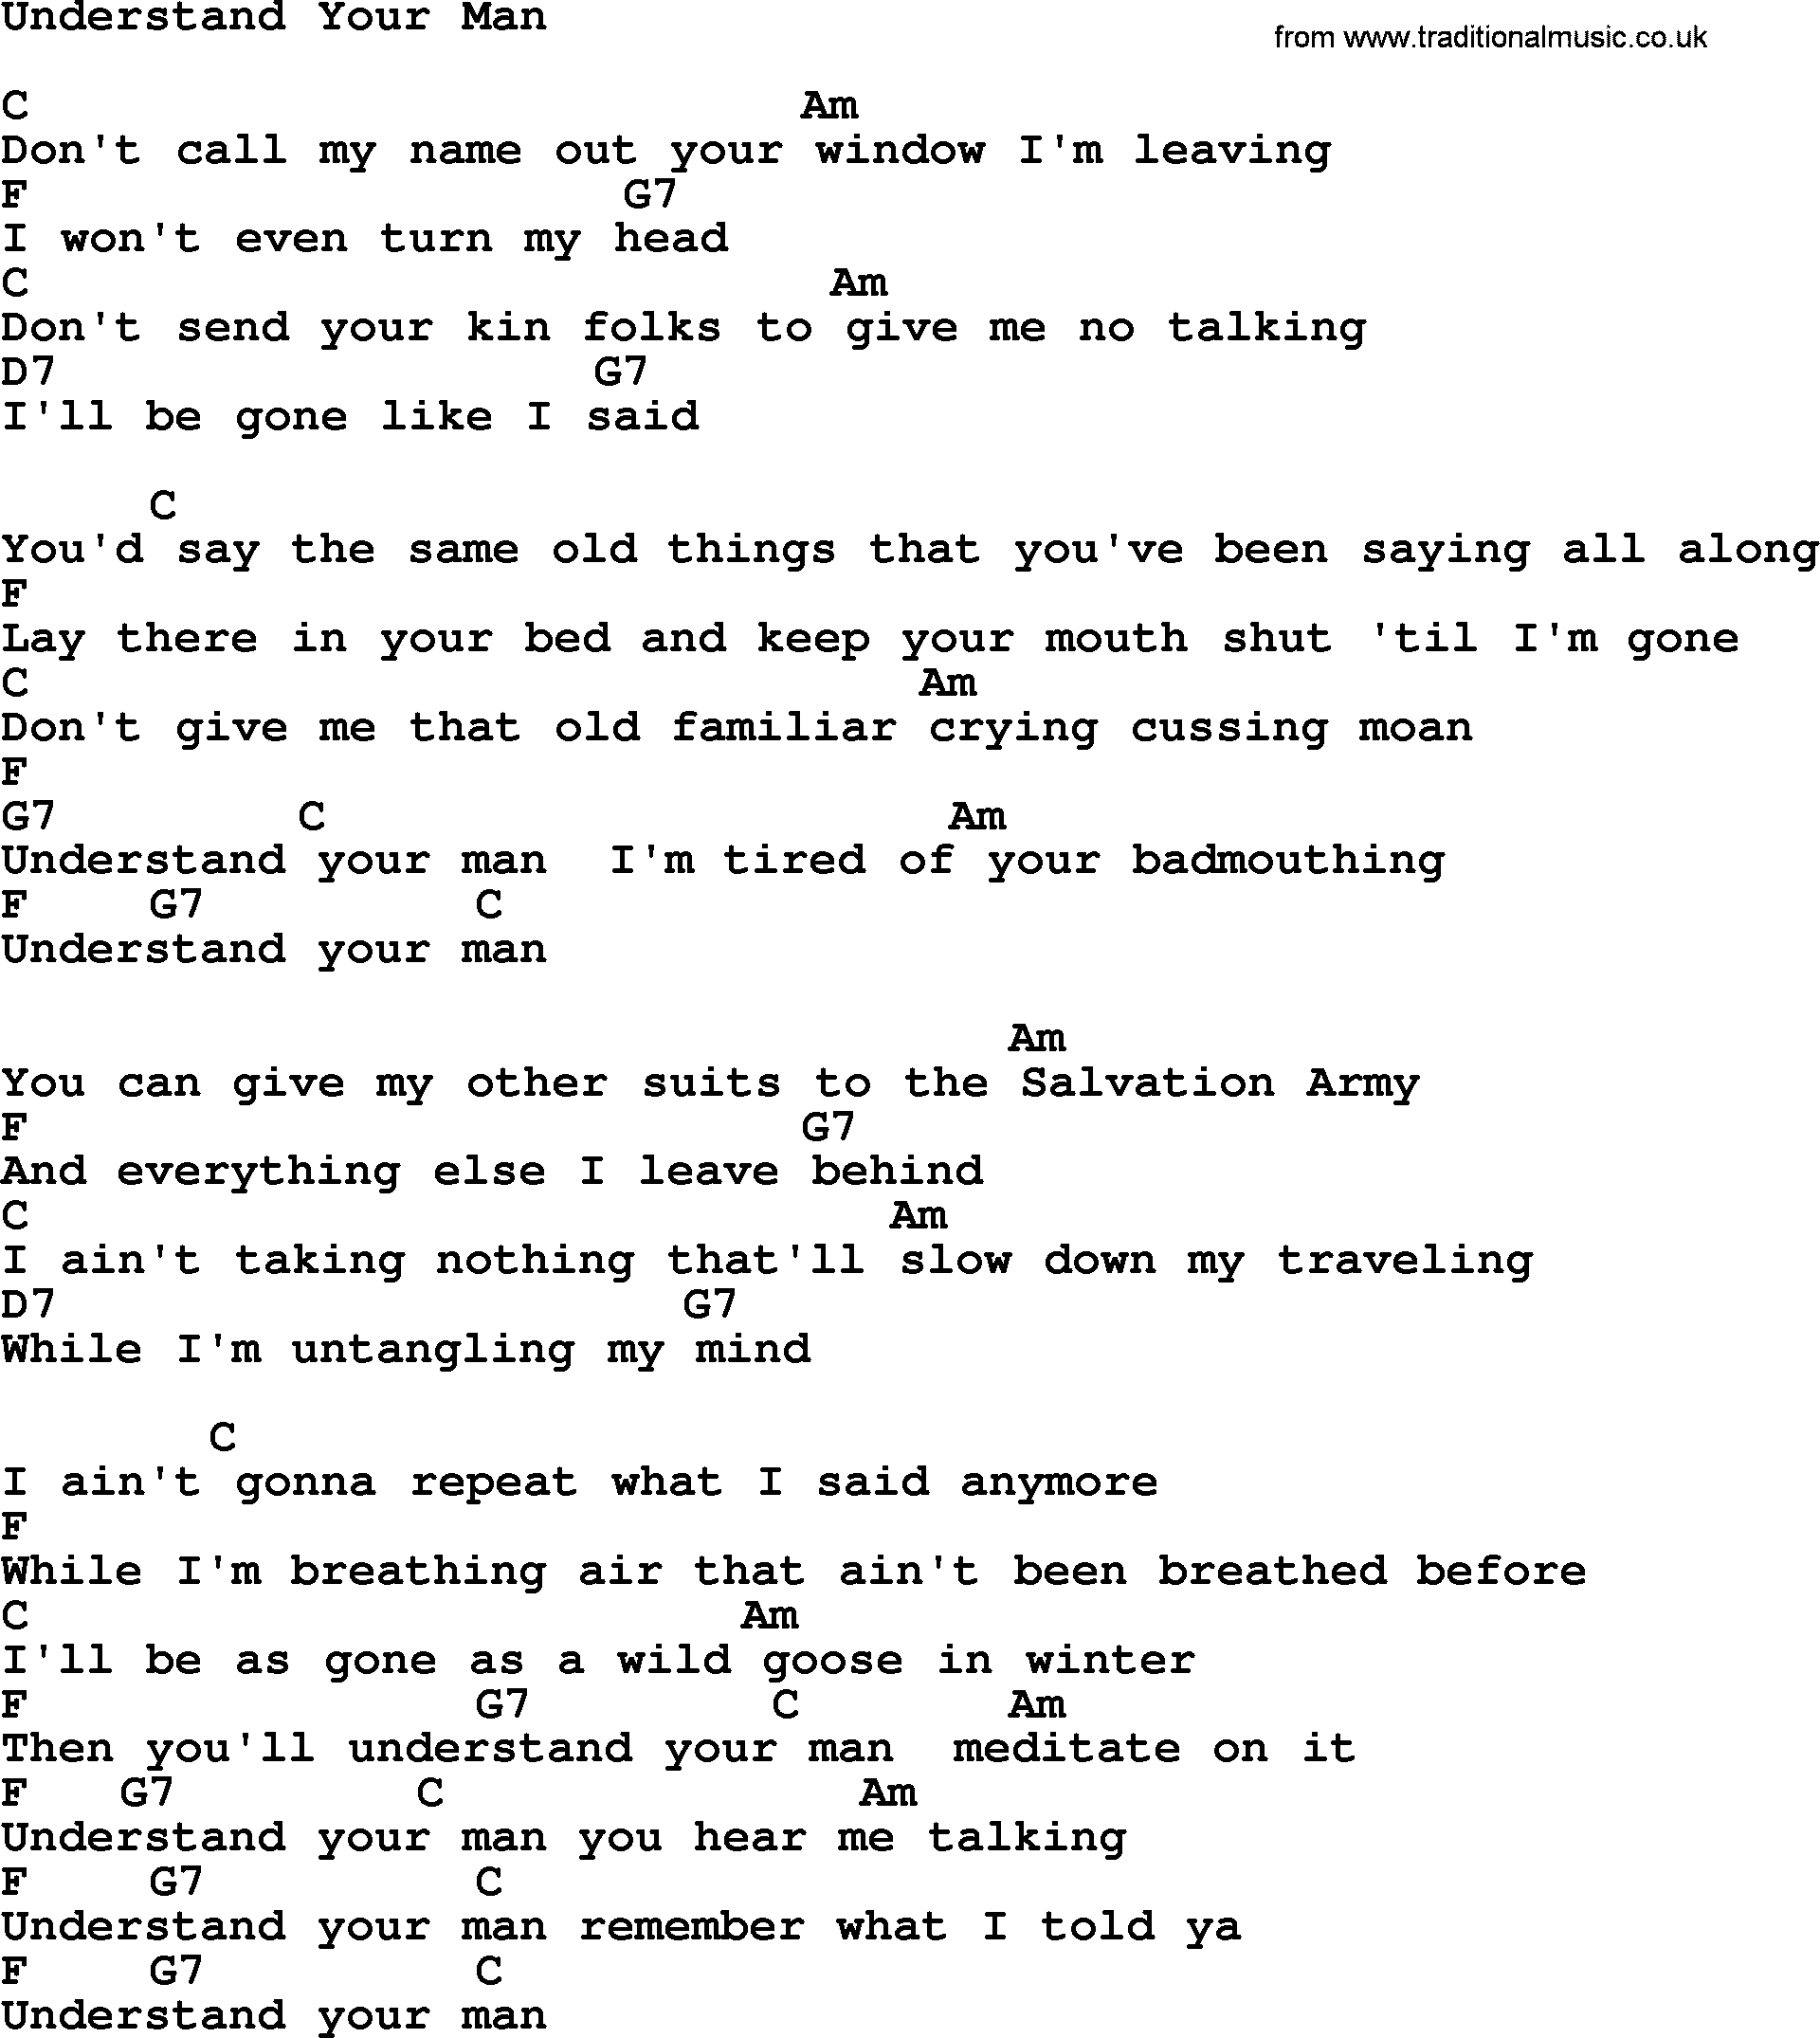 When I Was Your Man Chords Johnny Cash Song Understand Your Man Lyrics And Chords